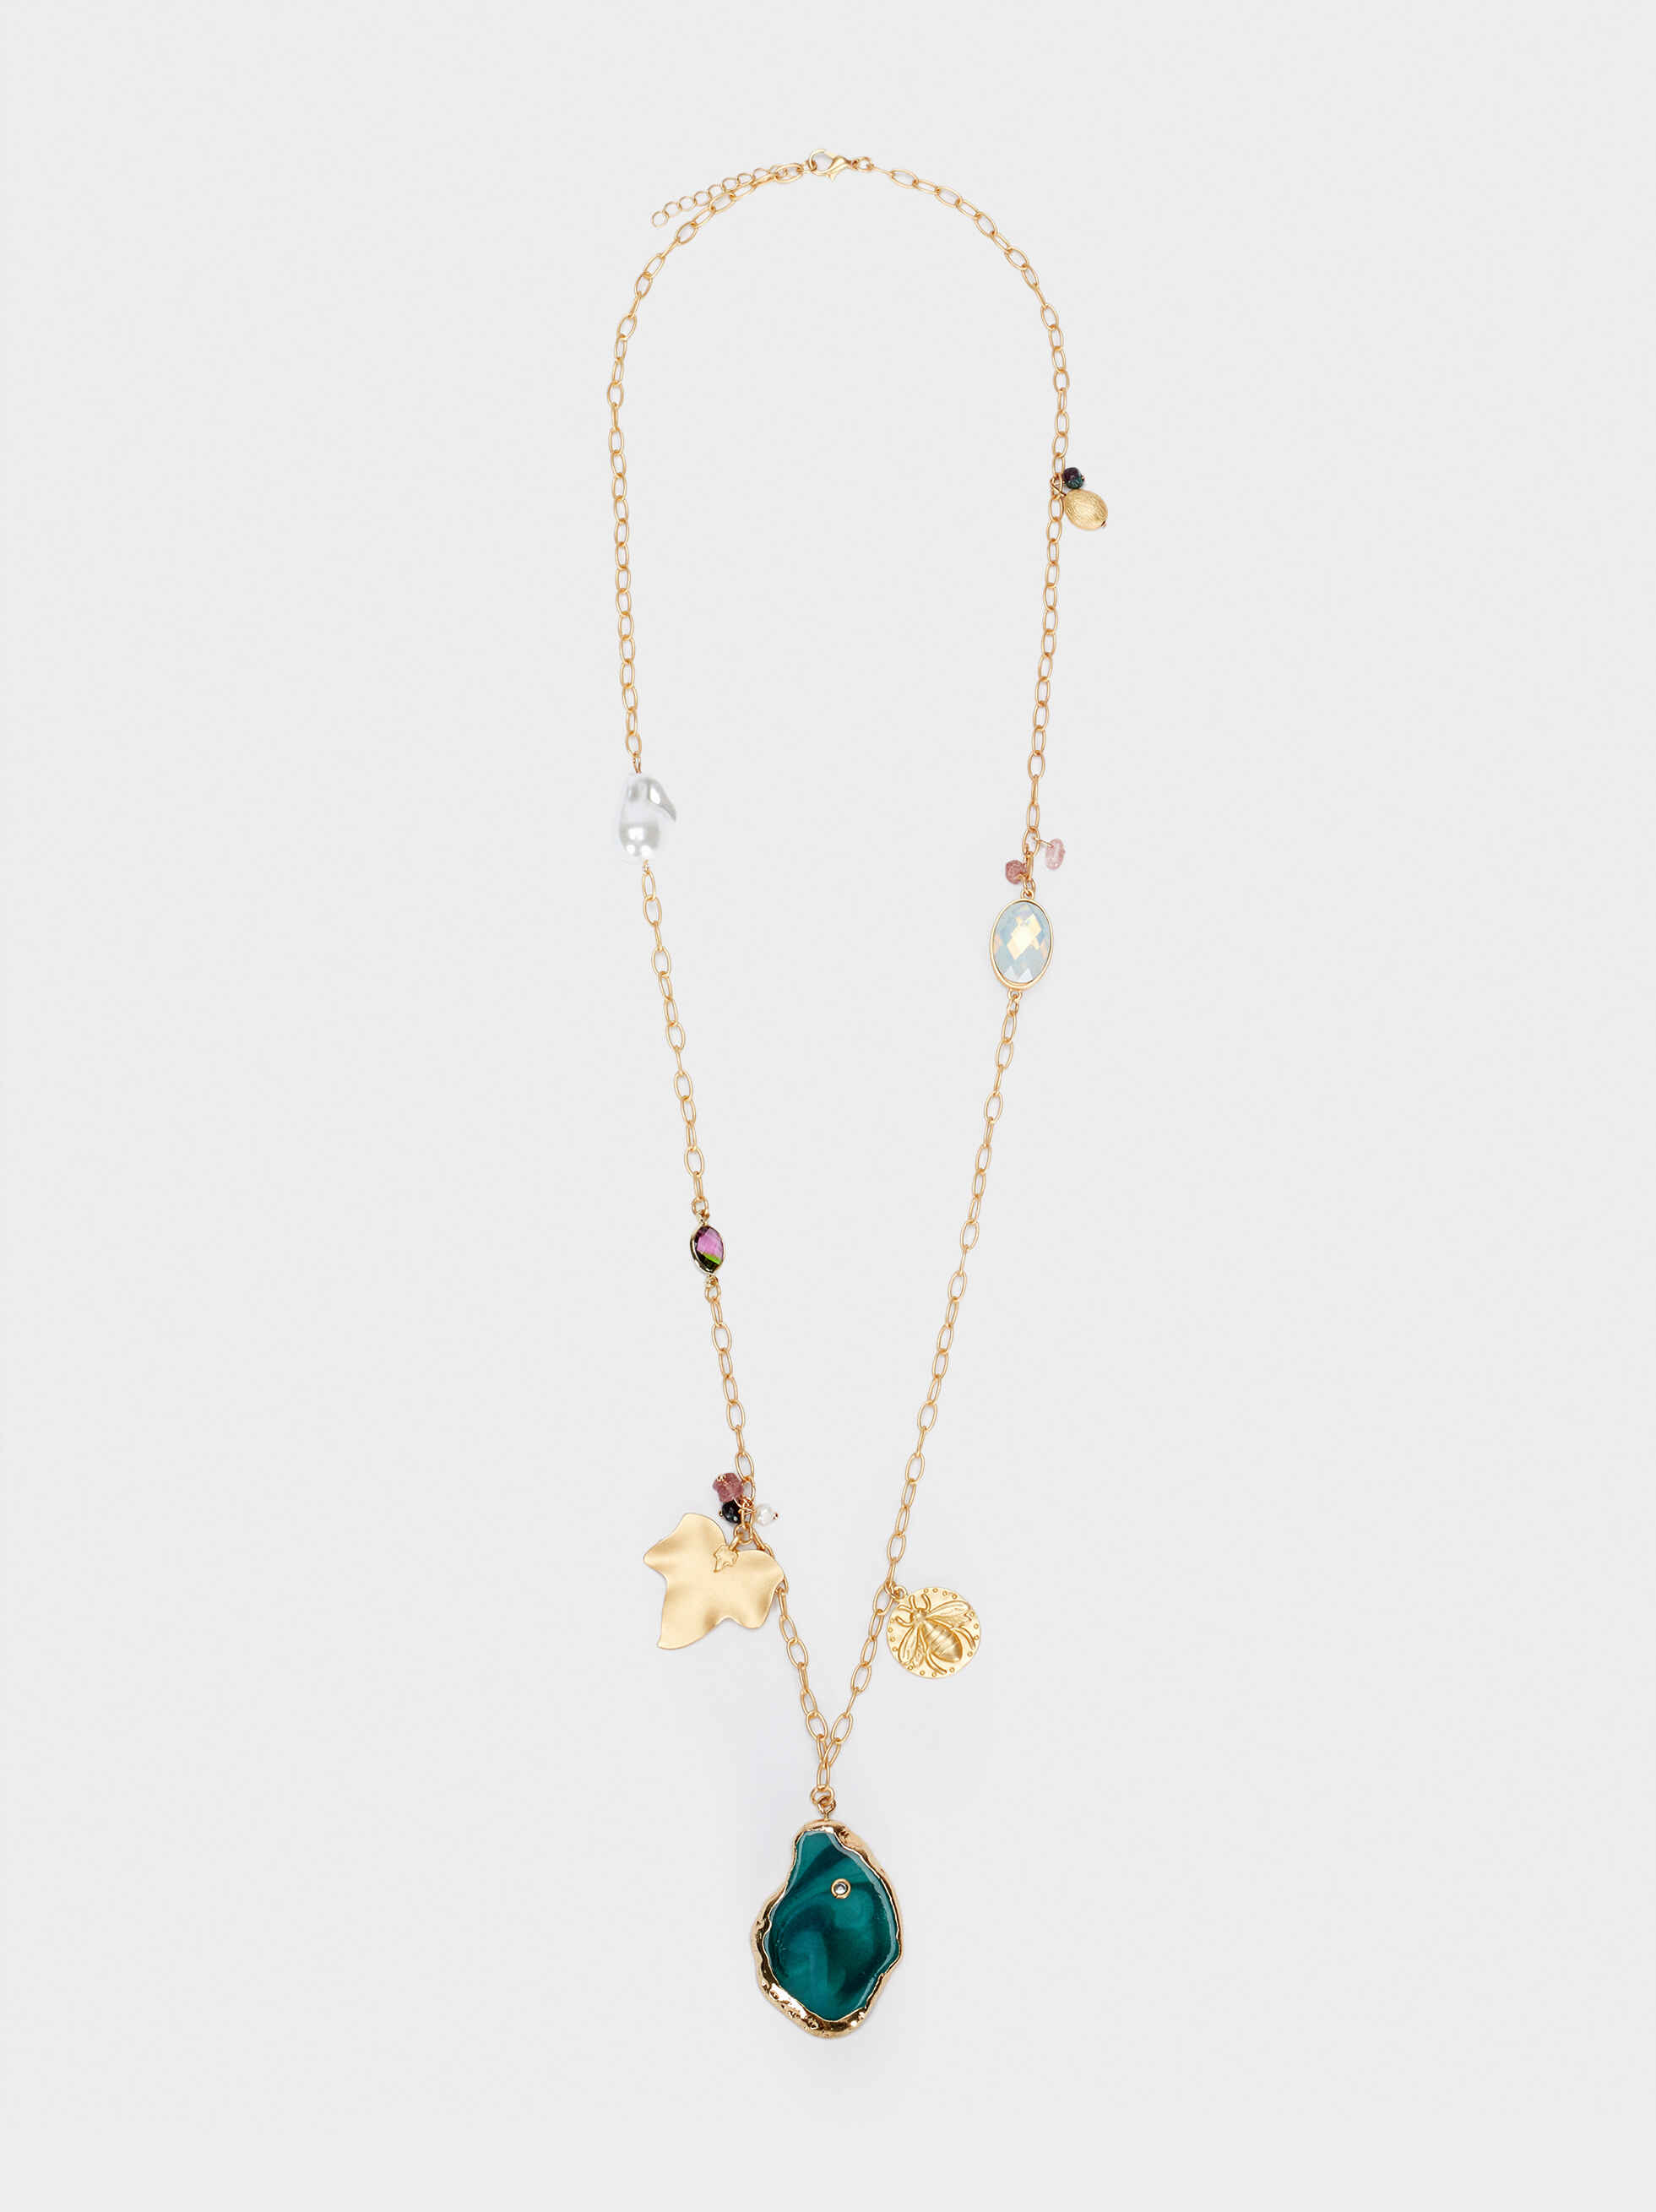 Long Gold Necklace With Stone, Multicolor, hi-res